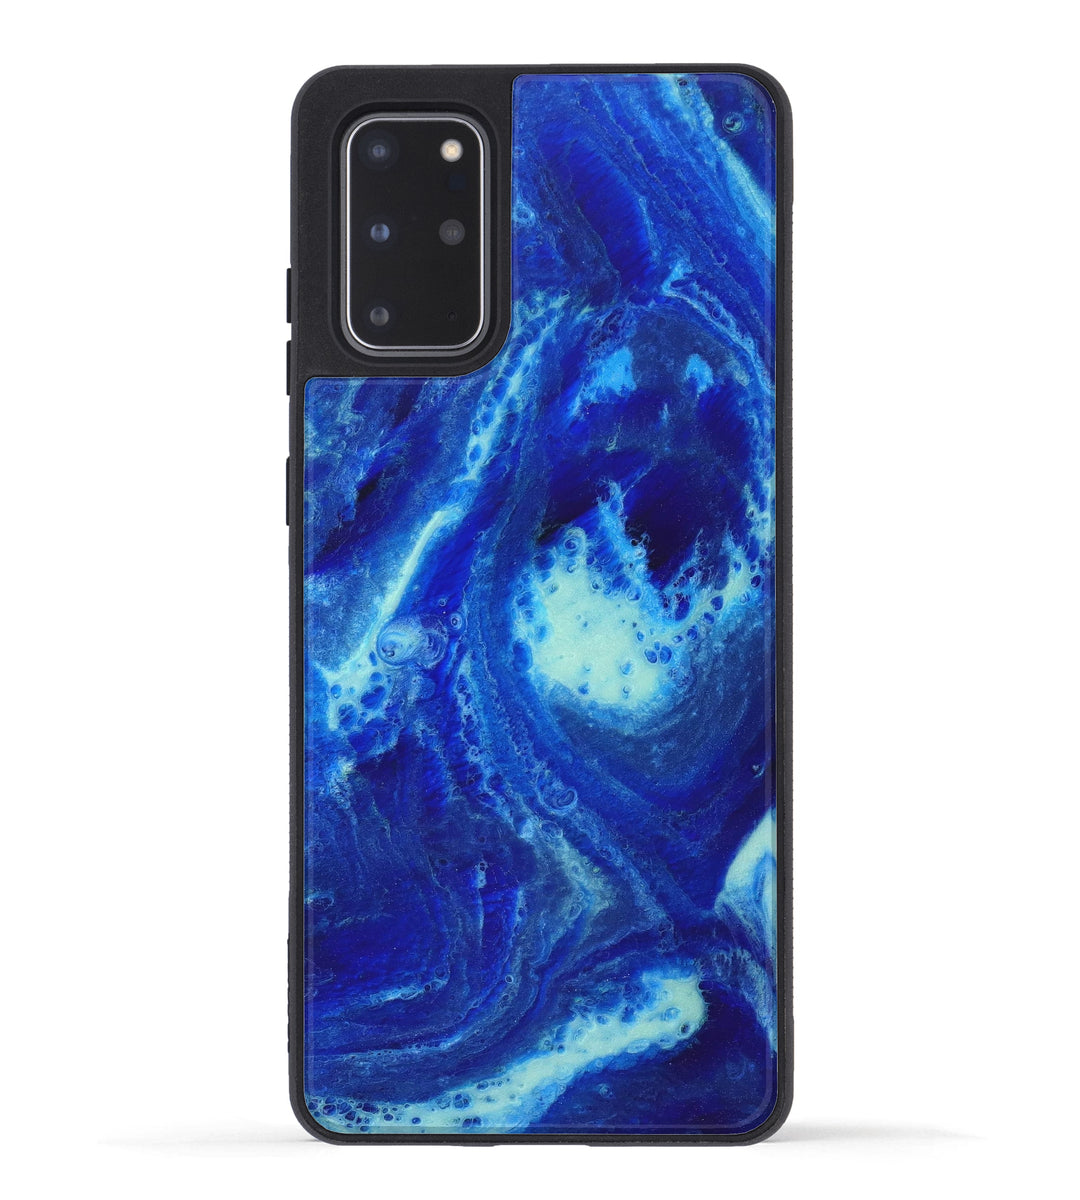 Galaxy S20 Plus ResinArt Phone Case - Lilia (Dark Blue, 347543)